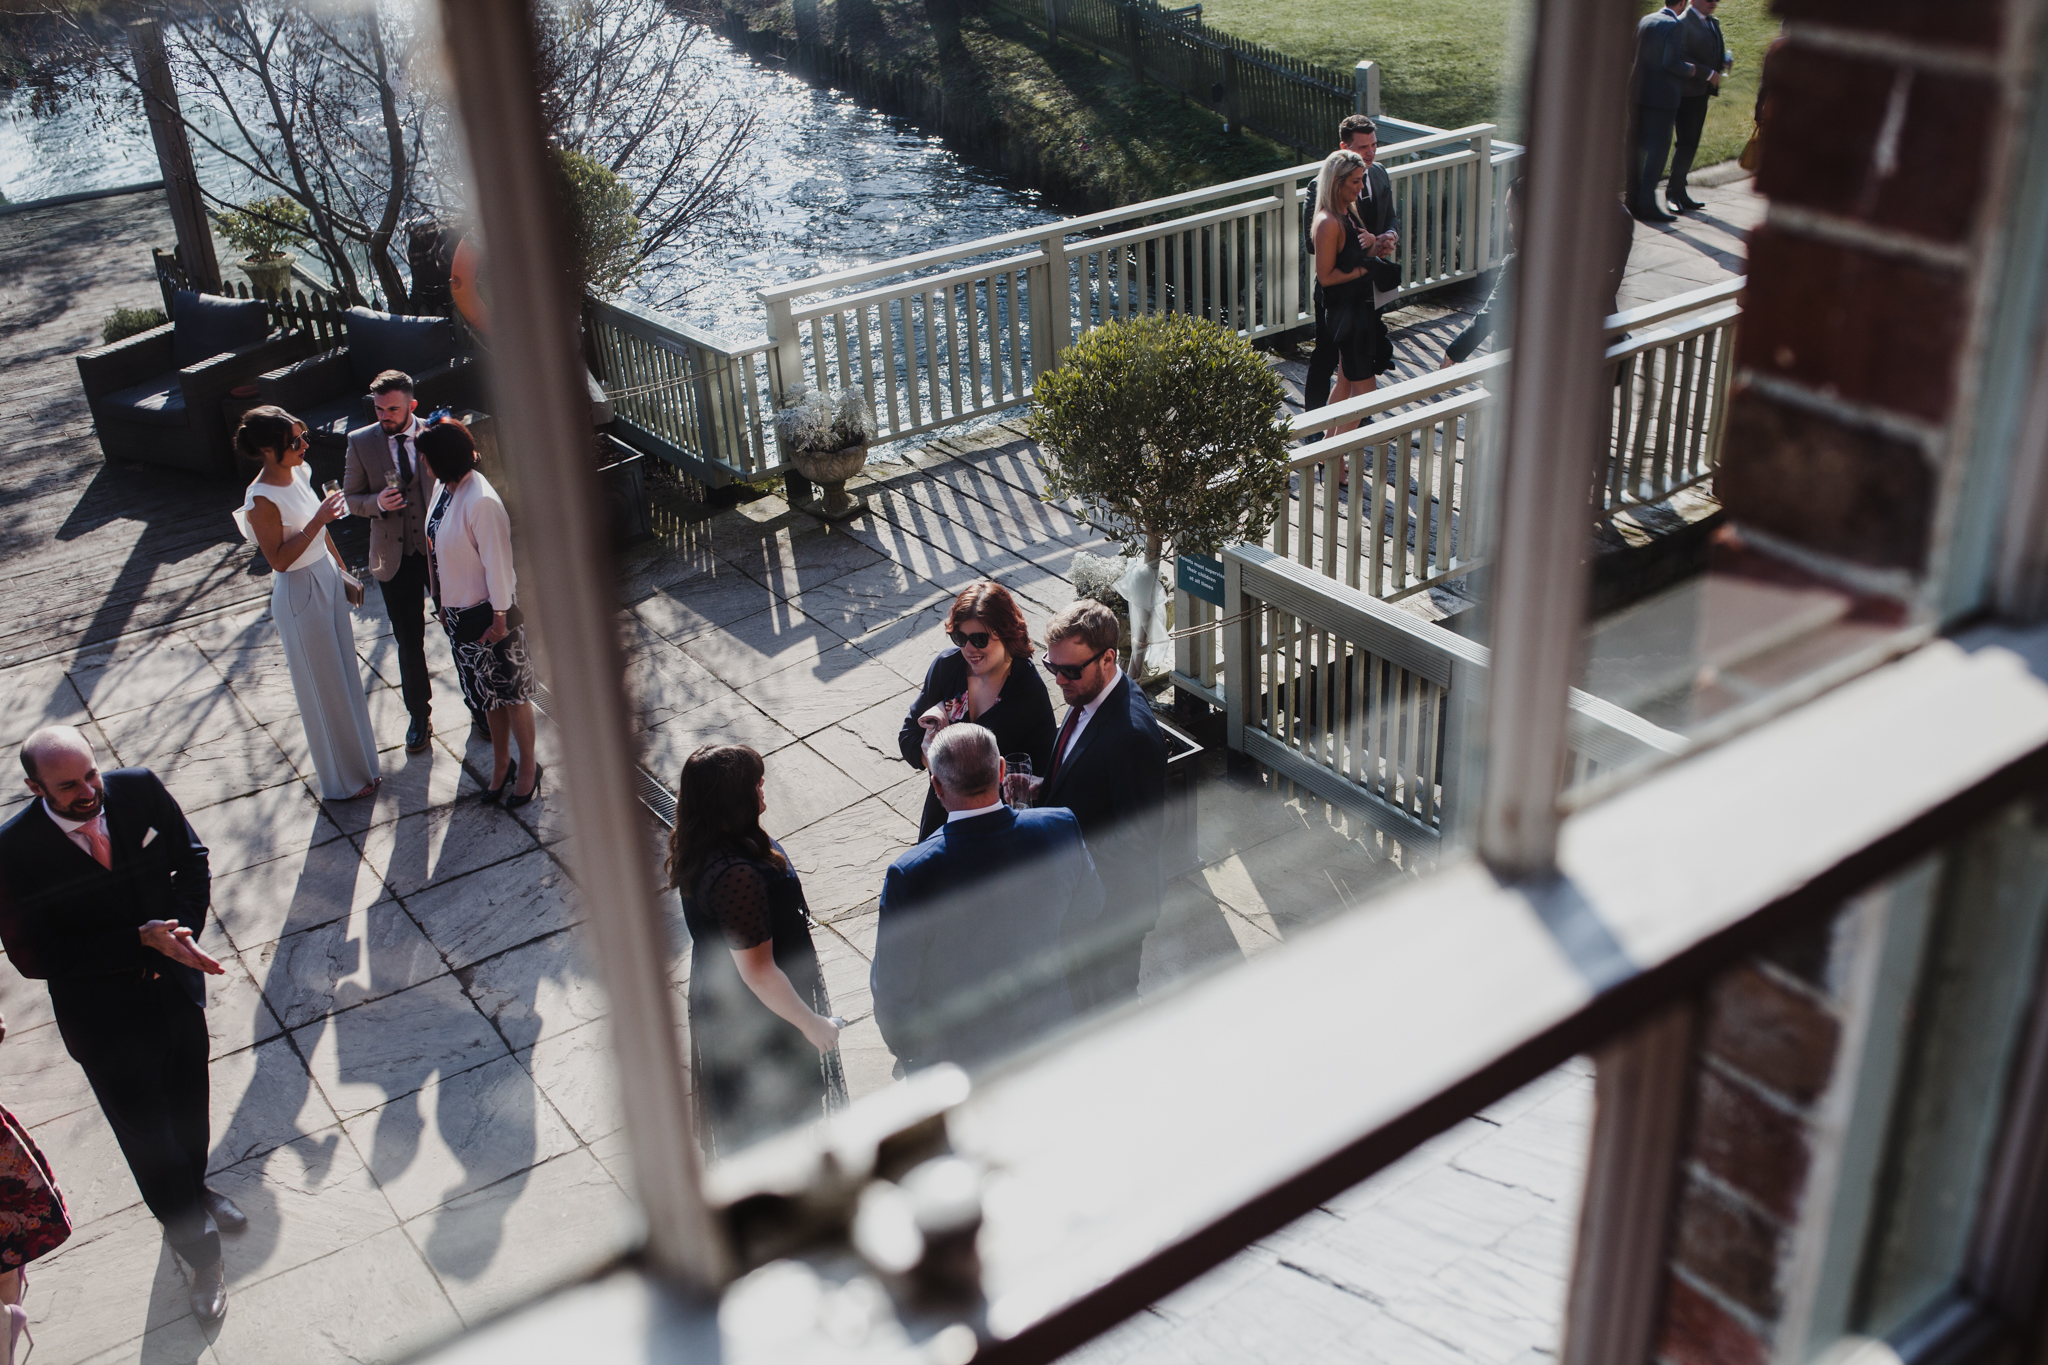 View out the window of wedding guests